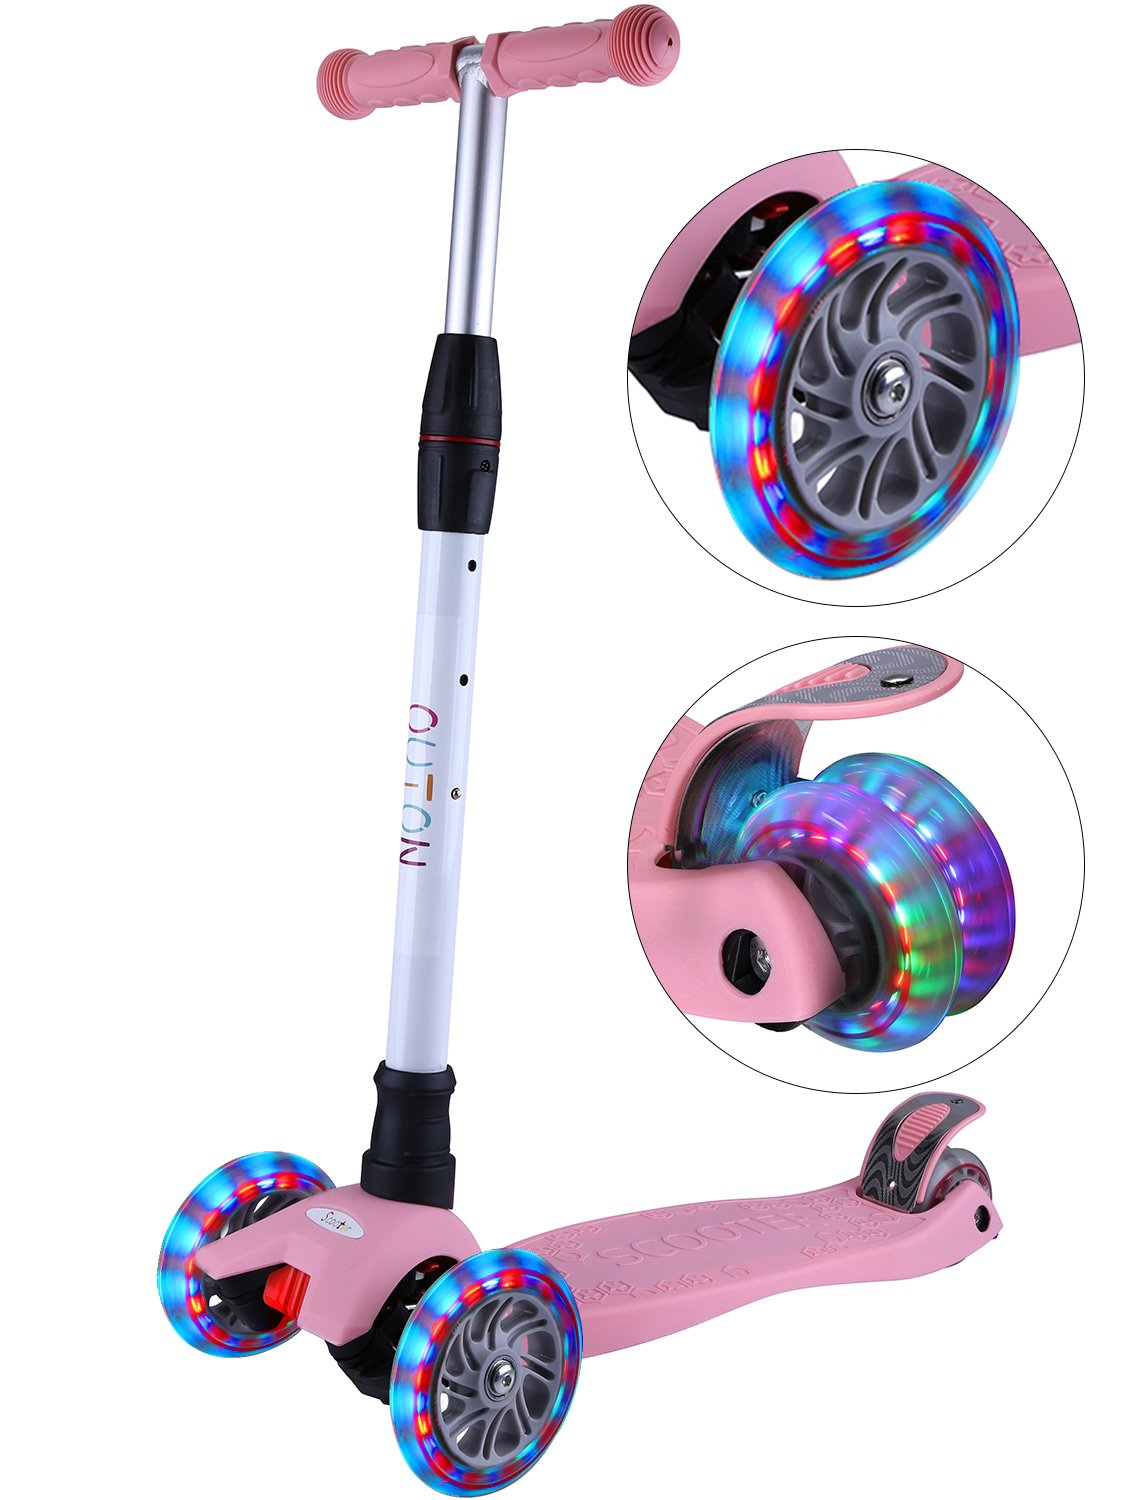 OUTON Kick Scooter For Kids 3 Wheel Lean To Steer Adjustable Height PU ABEC-7 Flasing Wheels Pink